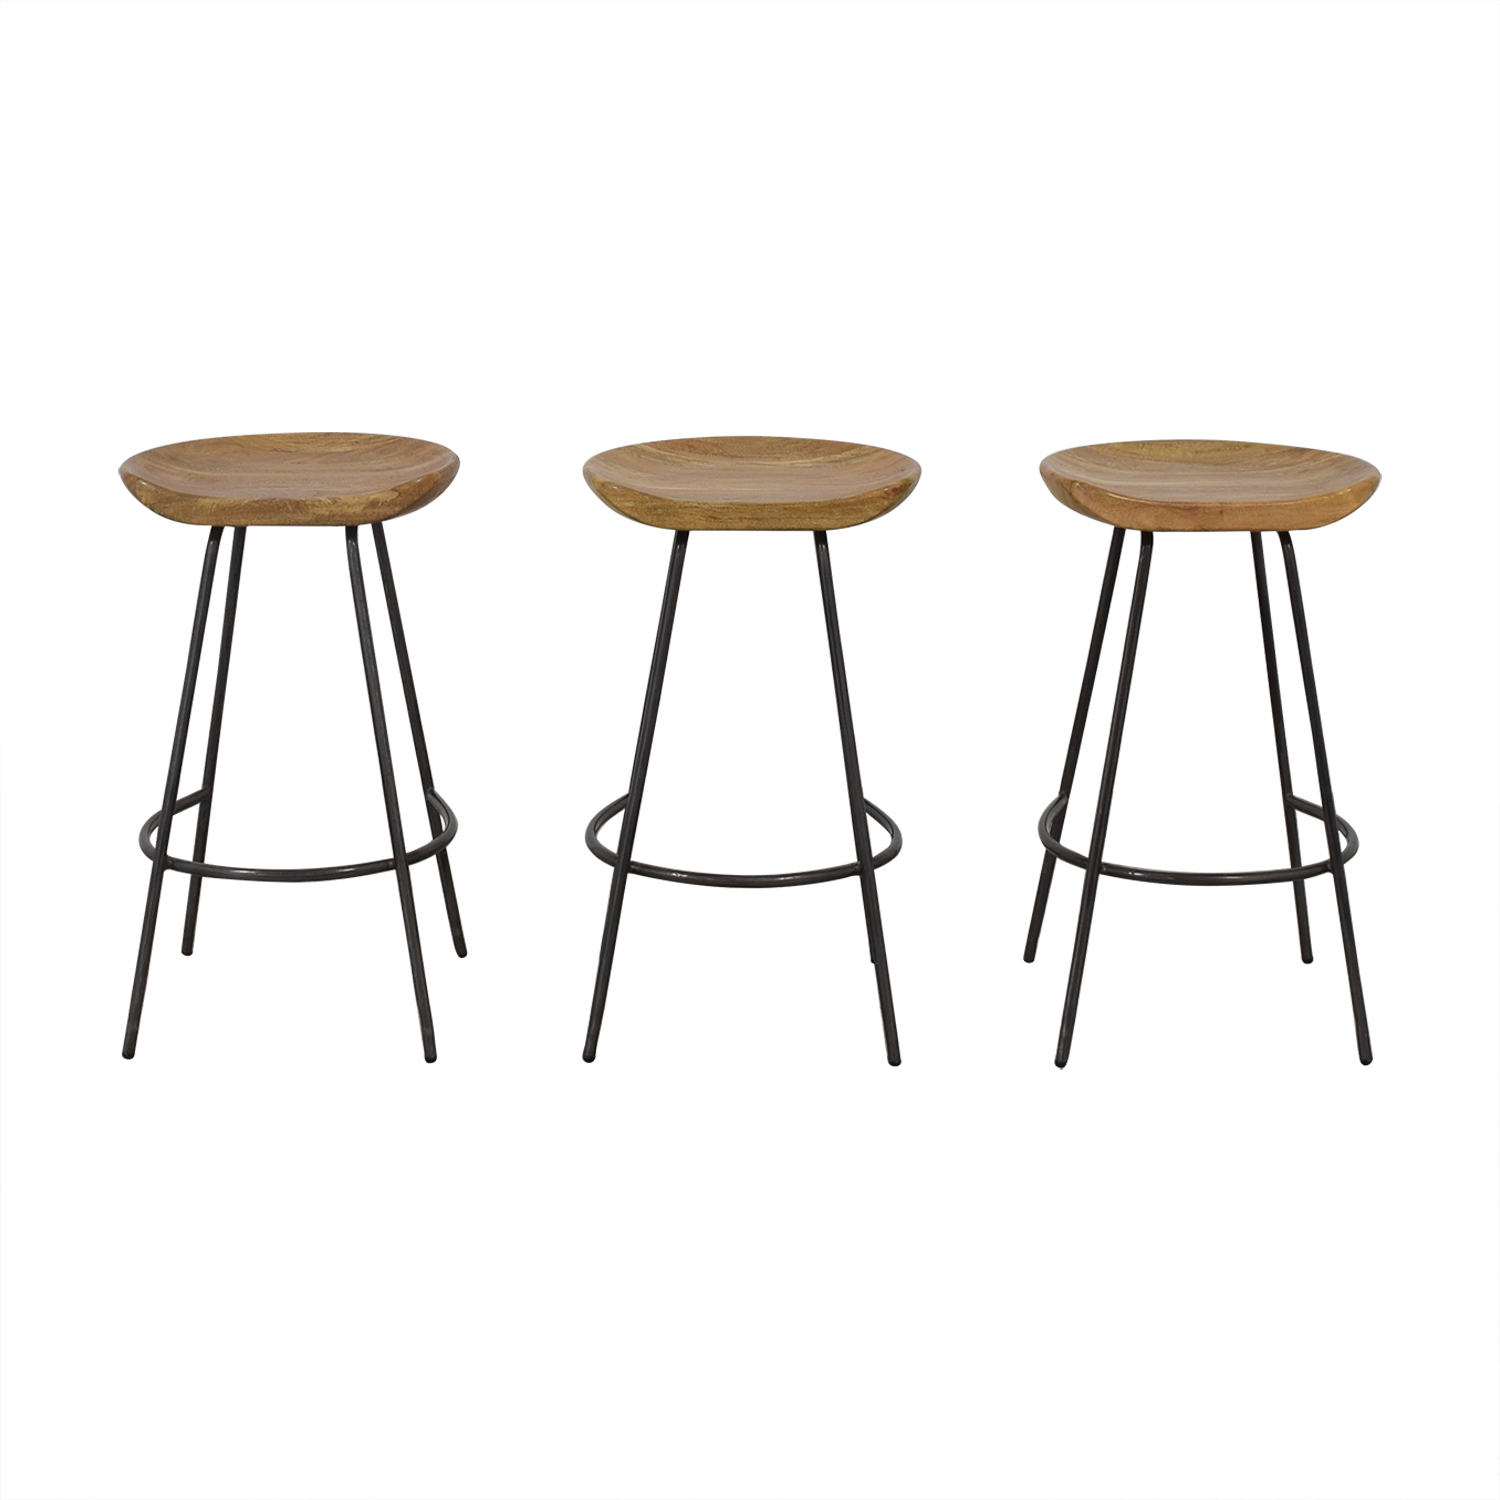 Tremendous 48 Off West Elm West Elm Alden Bar And Counter Stools Chairs Alphanode Cool Chair Designs And Ideas Alphanodeonline